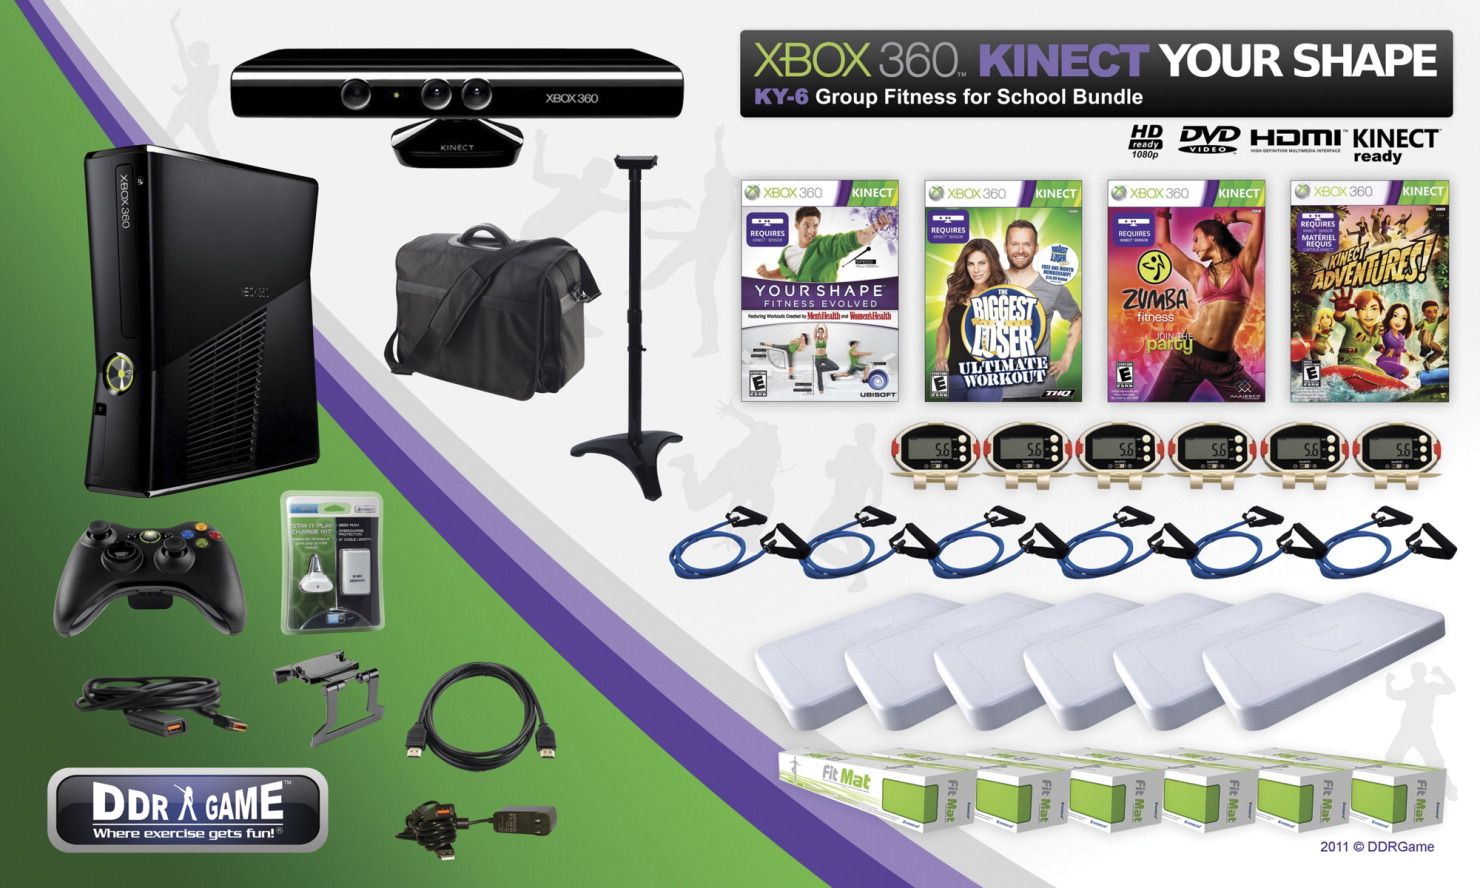 XBOX 360 Kinect Your Shape KY-6 Group Fitness for School Bundle